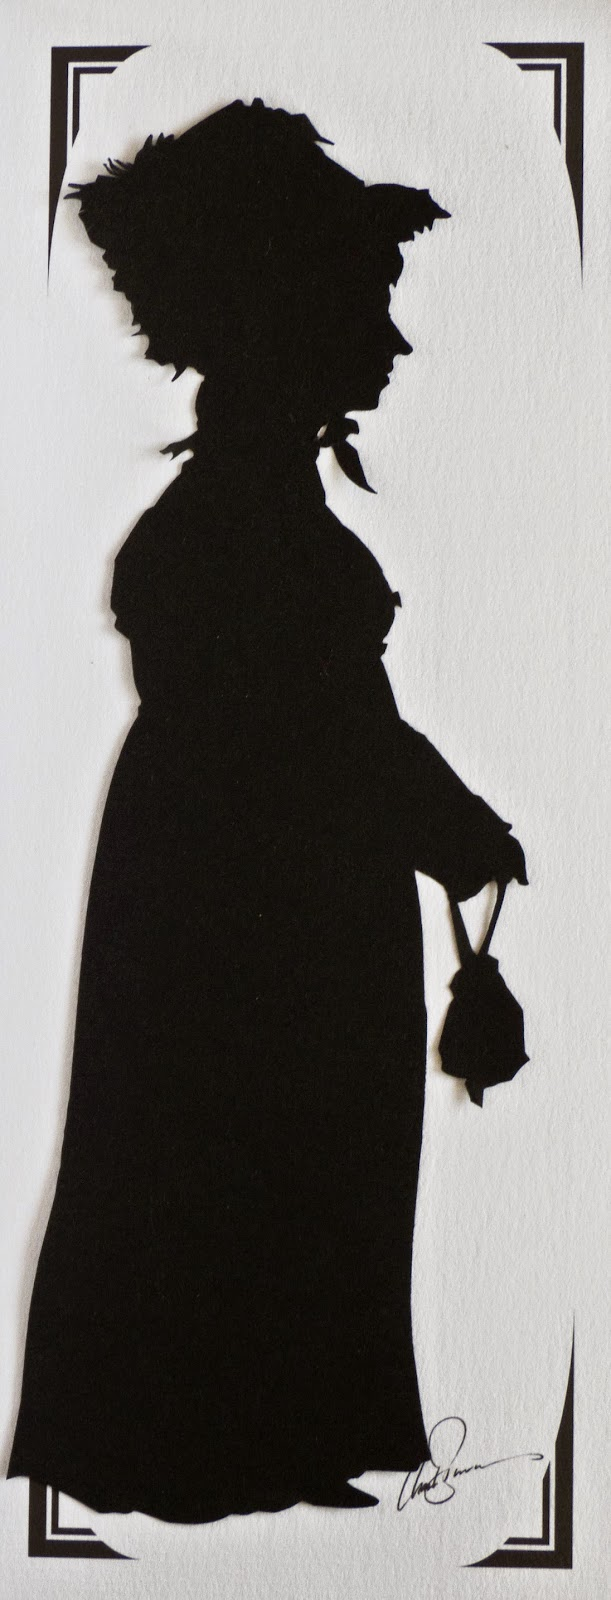 Silhouette of Rachel Knowles in Regency costume by The Roving Artist